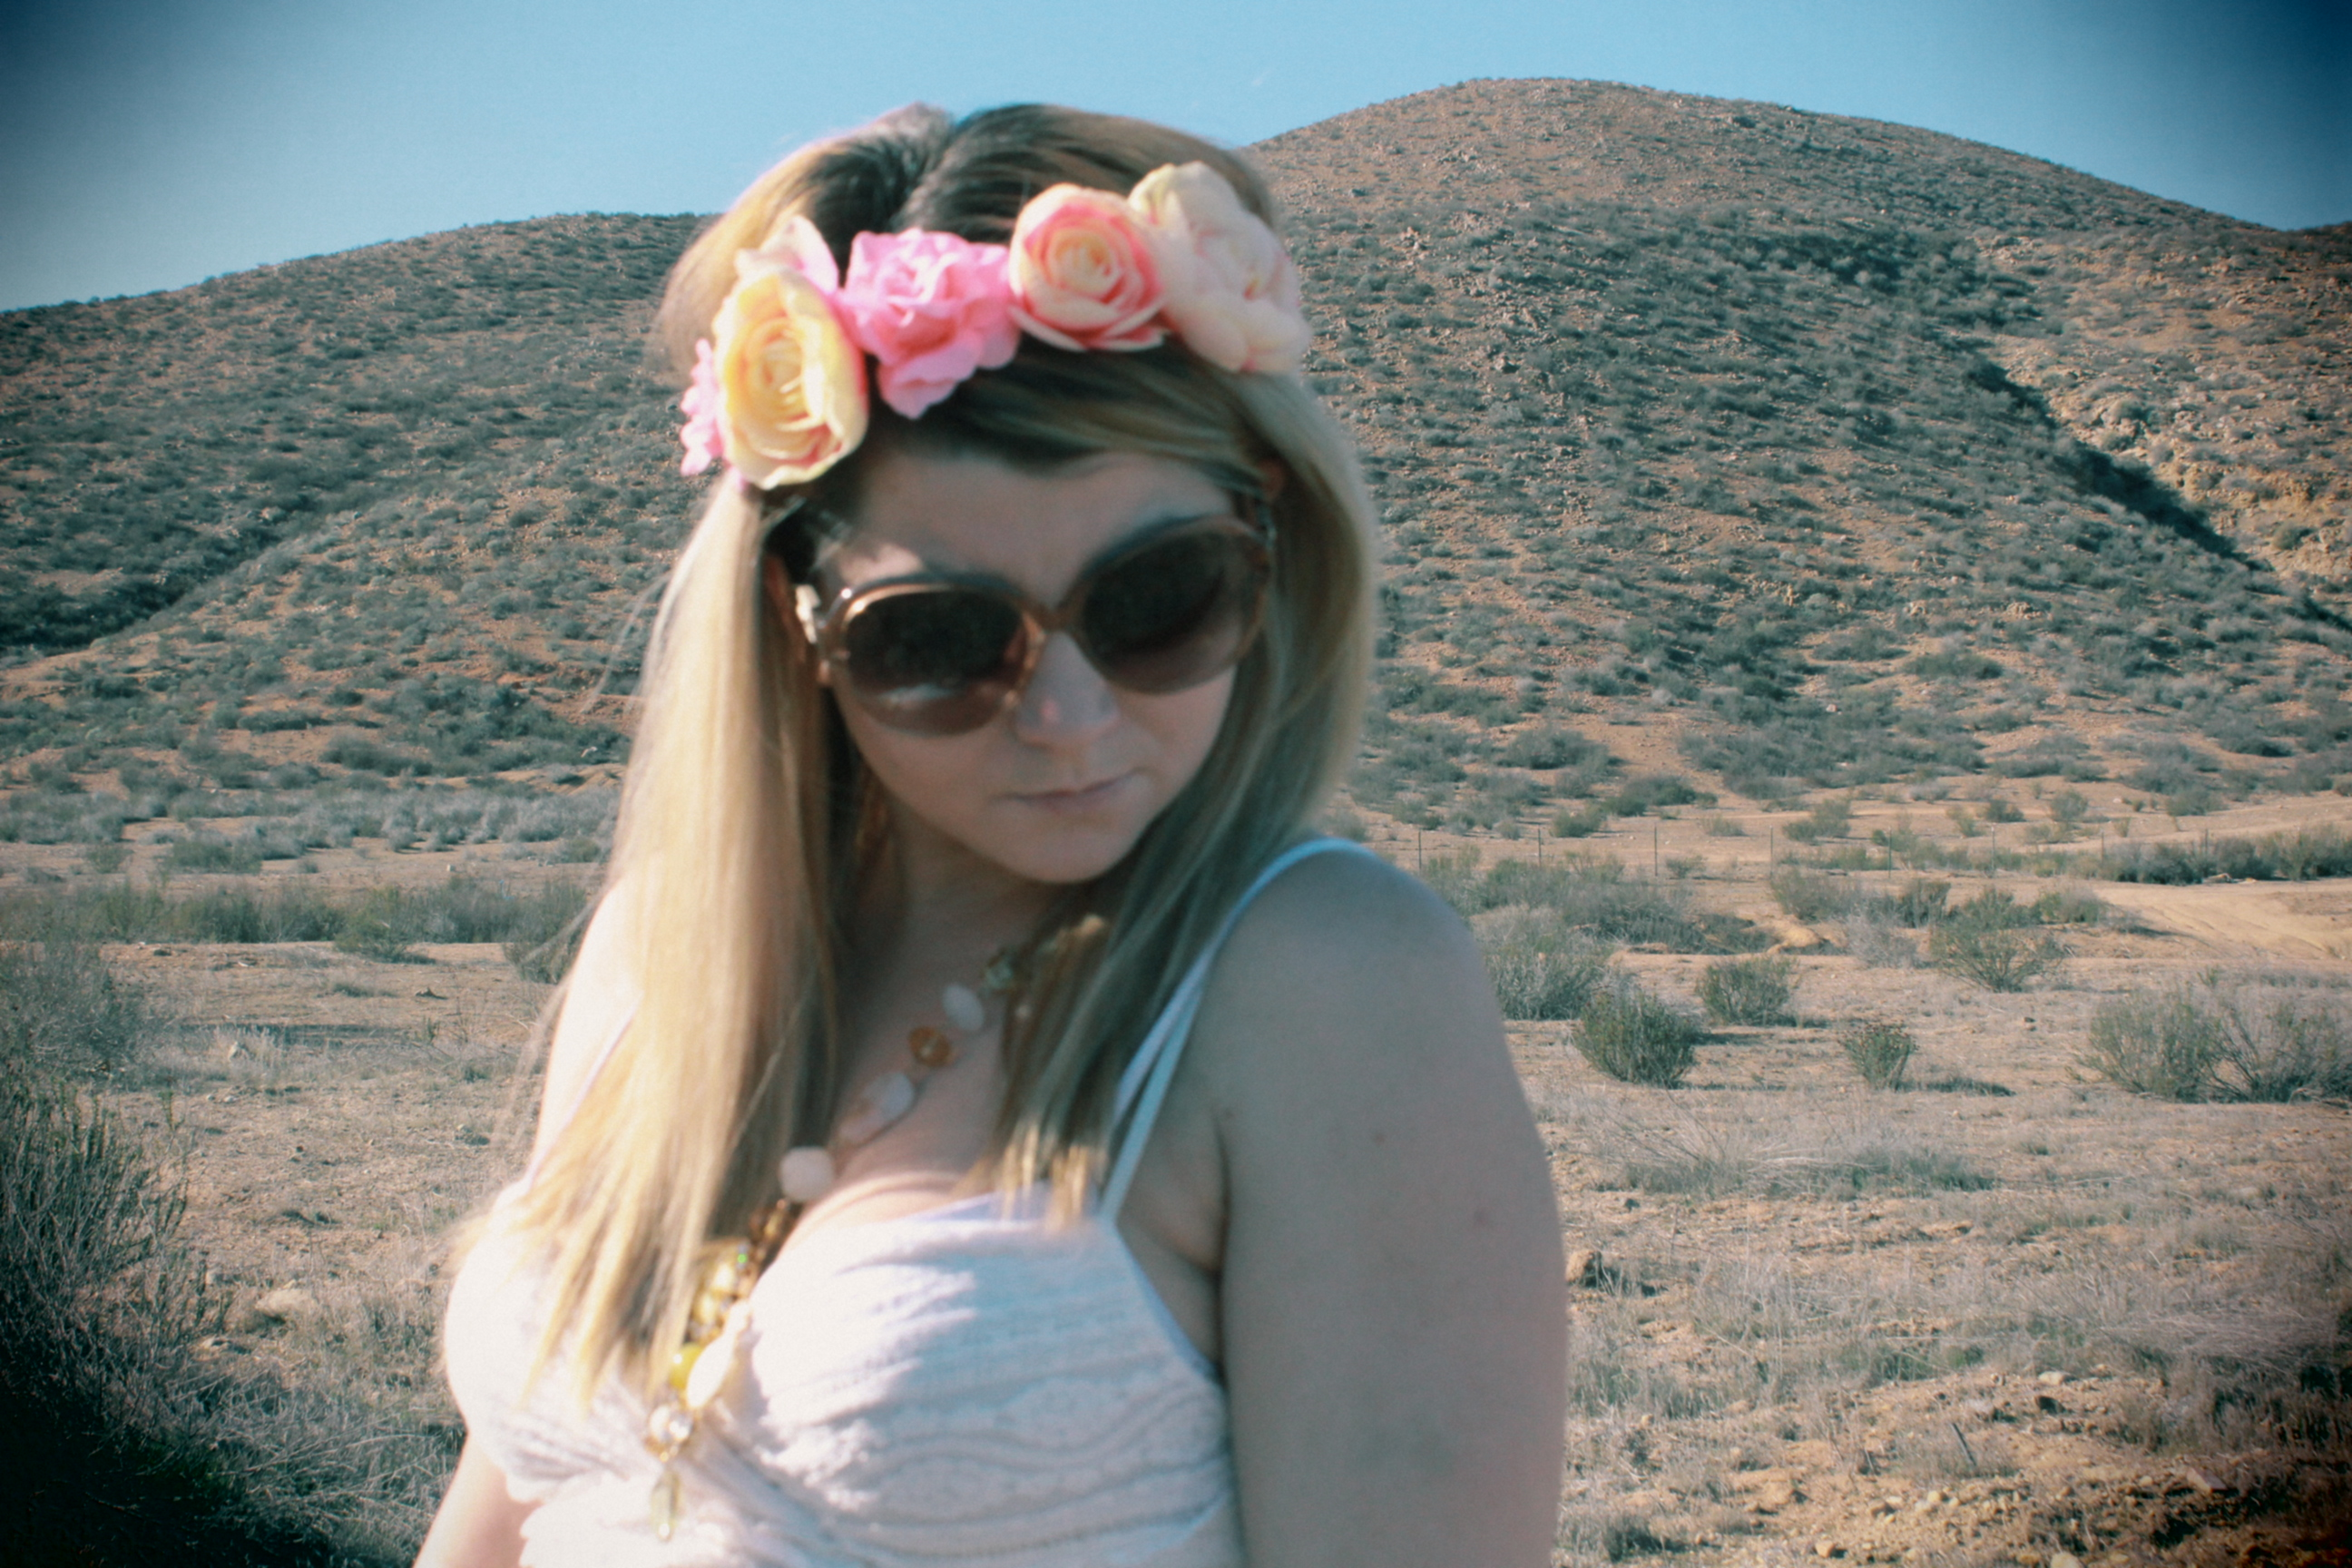 Spring just jess fashion growing up my ultimate goal was to own a flower crown i didnt even care if it was one of those imitation sparkly crowns with the ribbons flowing down from izmirmasajfo